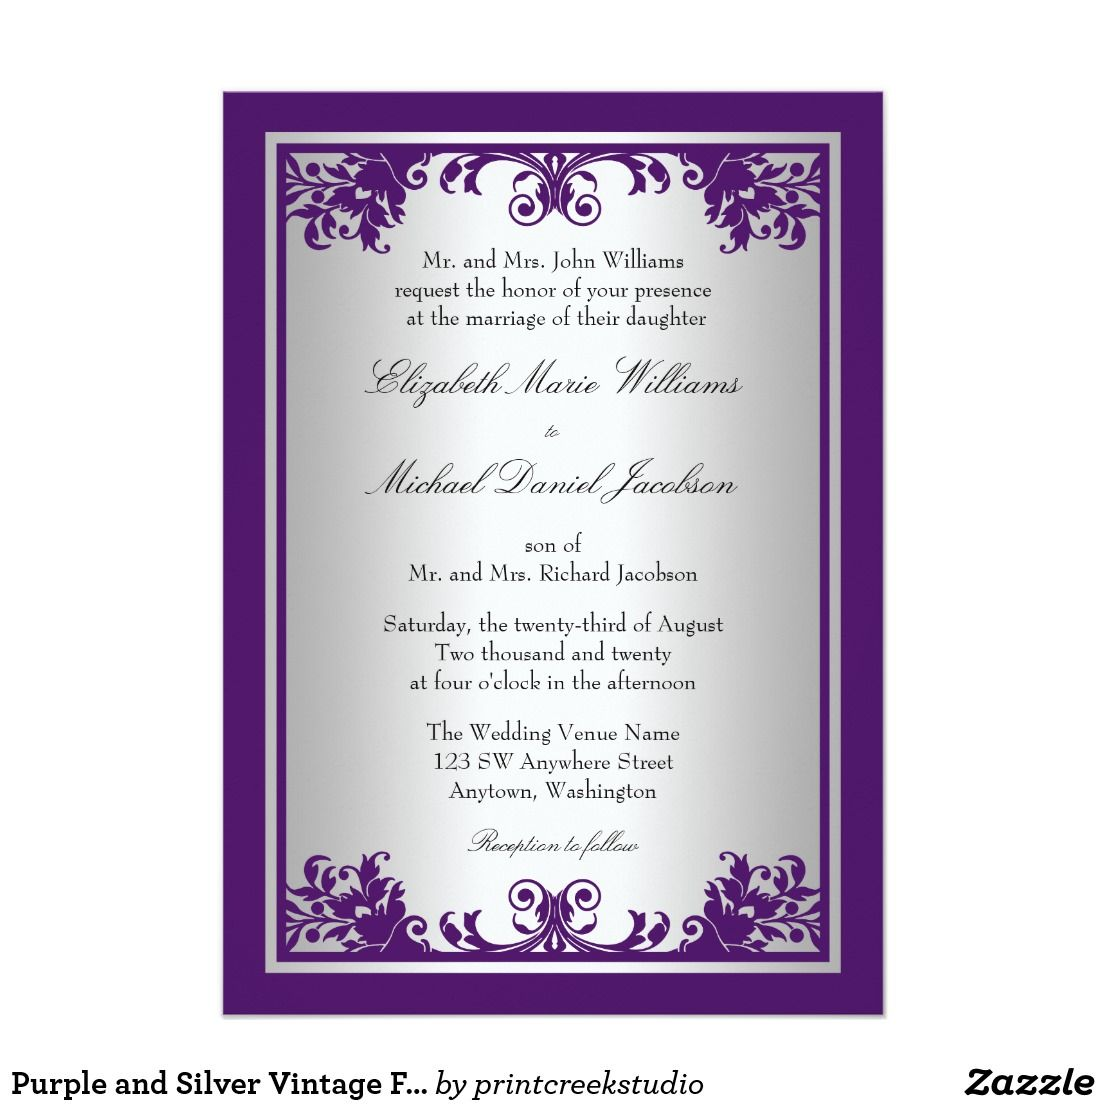 Purple and Silver Vintage Flourish Scroll Wedding Card An elegant vintage flourish scroll design is featured on this formal purple and faux silver wedding ...